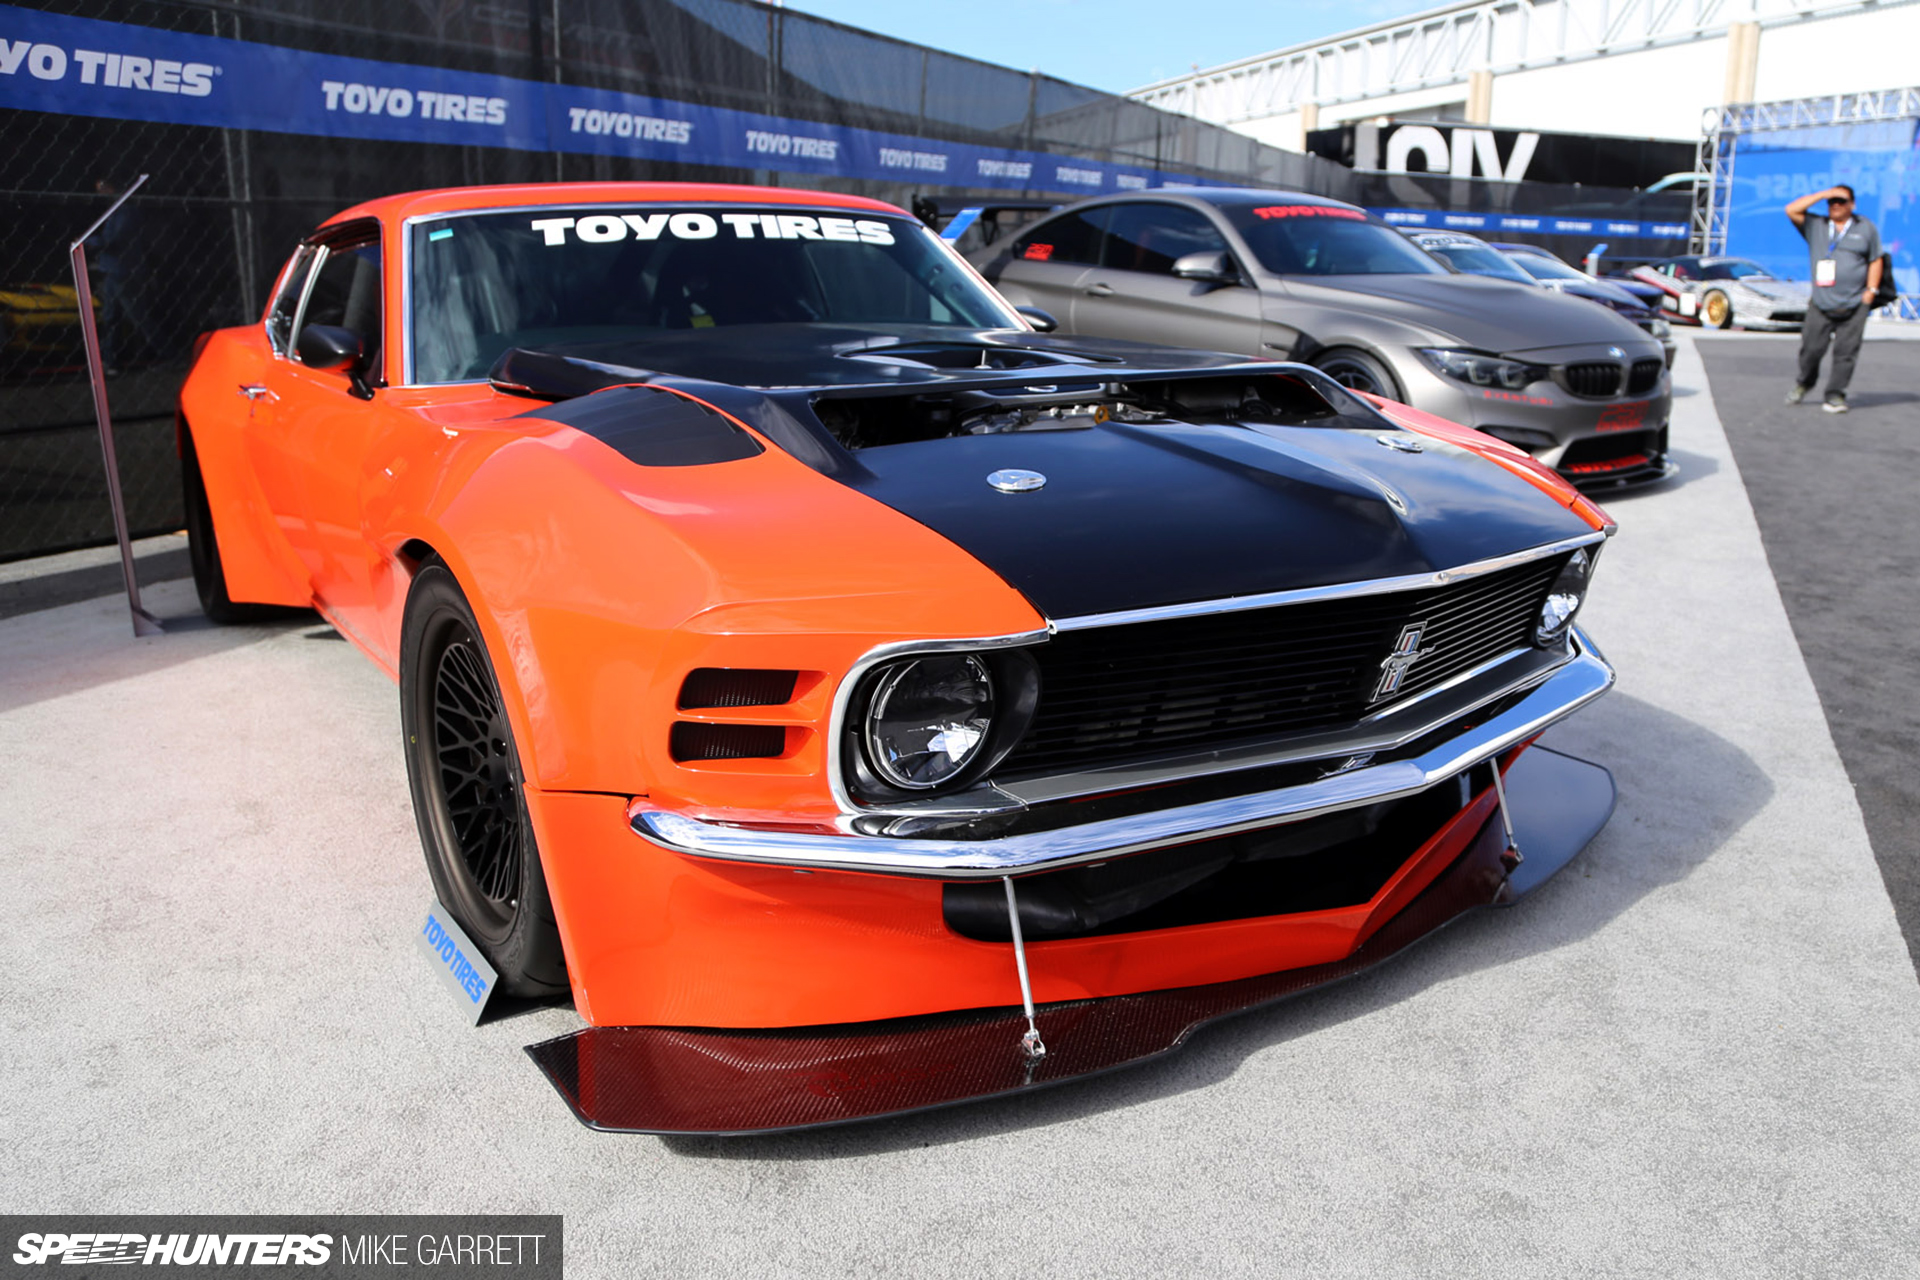 Ford Mustang Meets Nissan R35 GT-R - Speedhunters